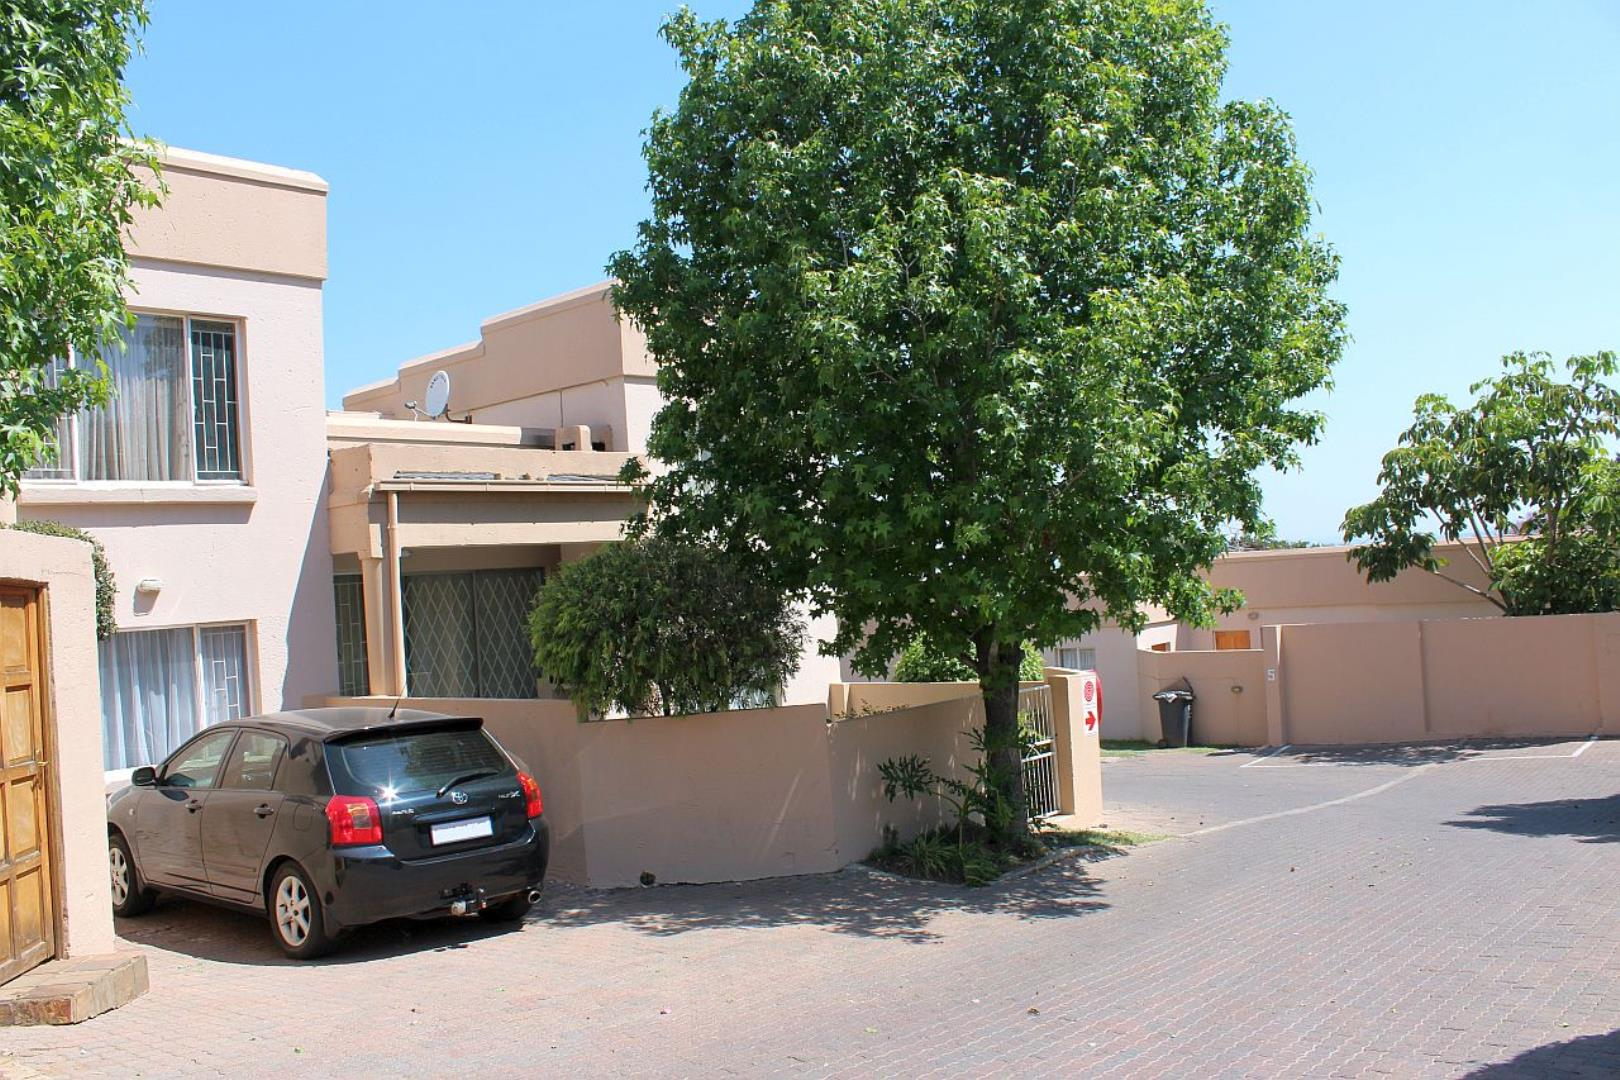 2 Bedroom  Duplex for Sale in Midrand - Gauteng